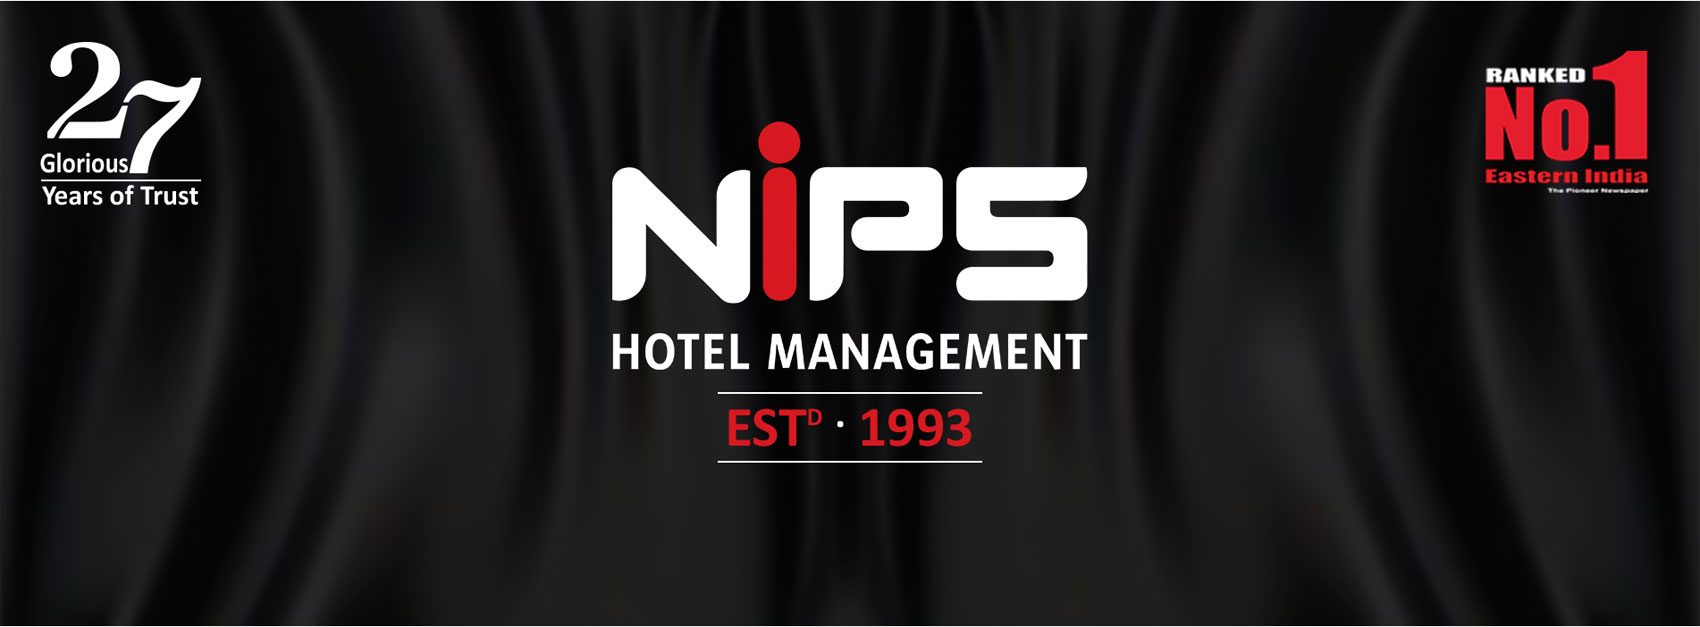 NIPS Hotel Management - Ranked No.1 in Eastern India